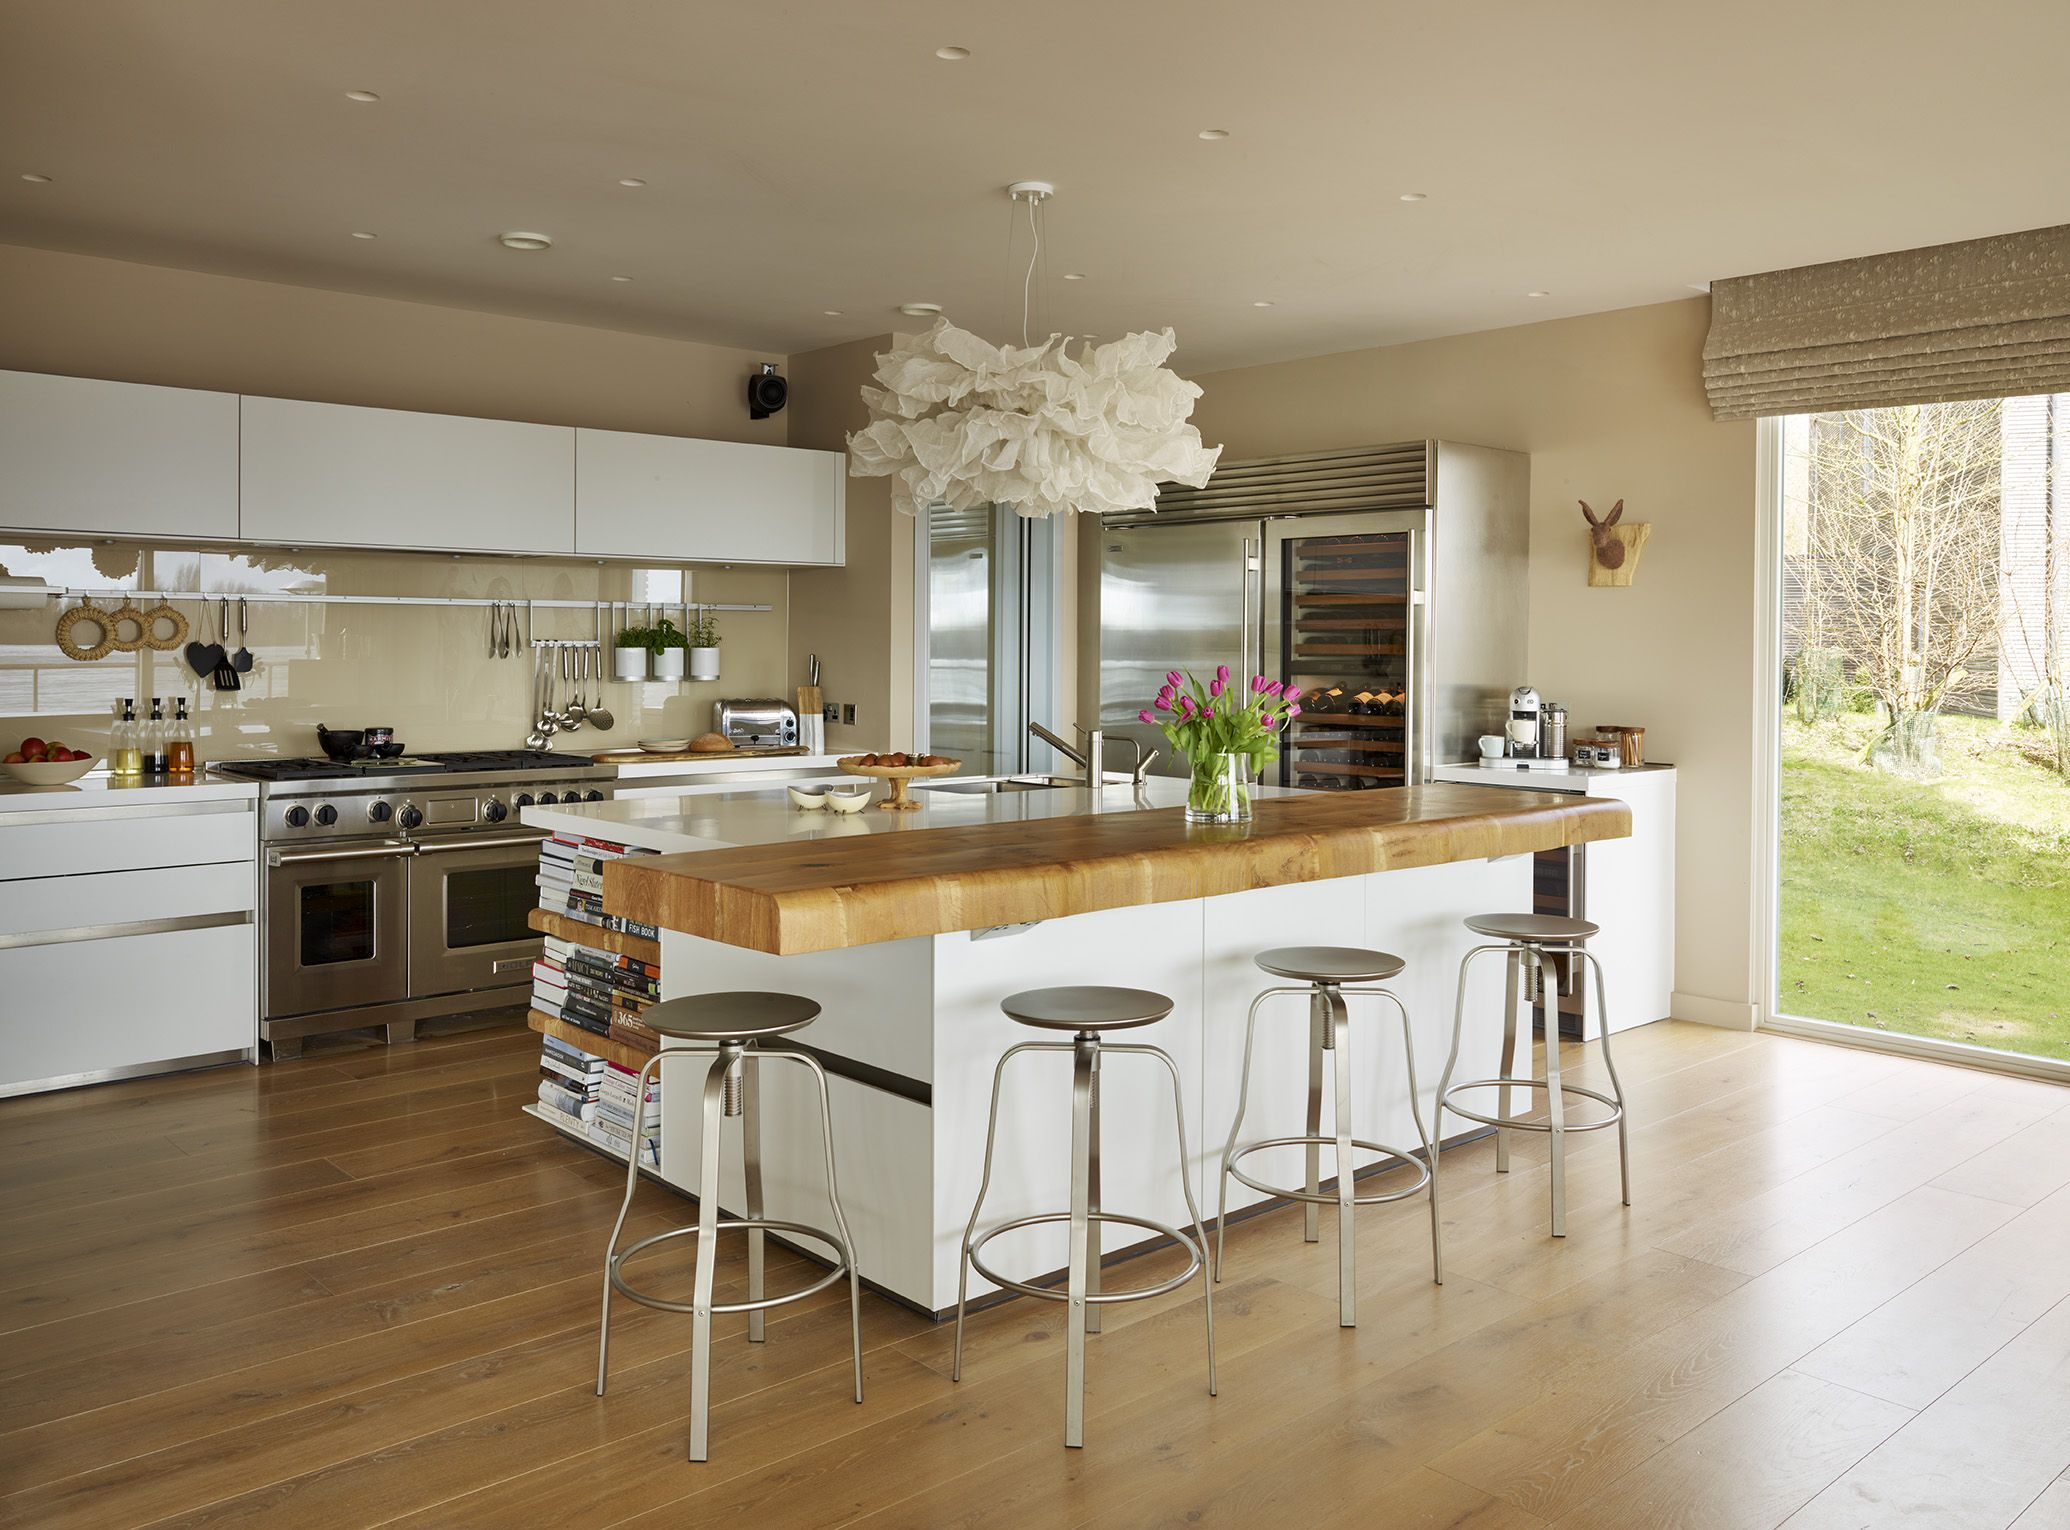 Add Your Kitchen With Kitchen Island With Stools: Bulthaup B3 Kitchen With Central Island With Bar Top And